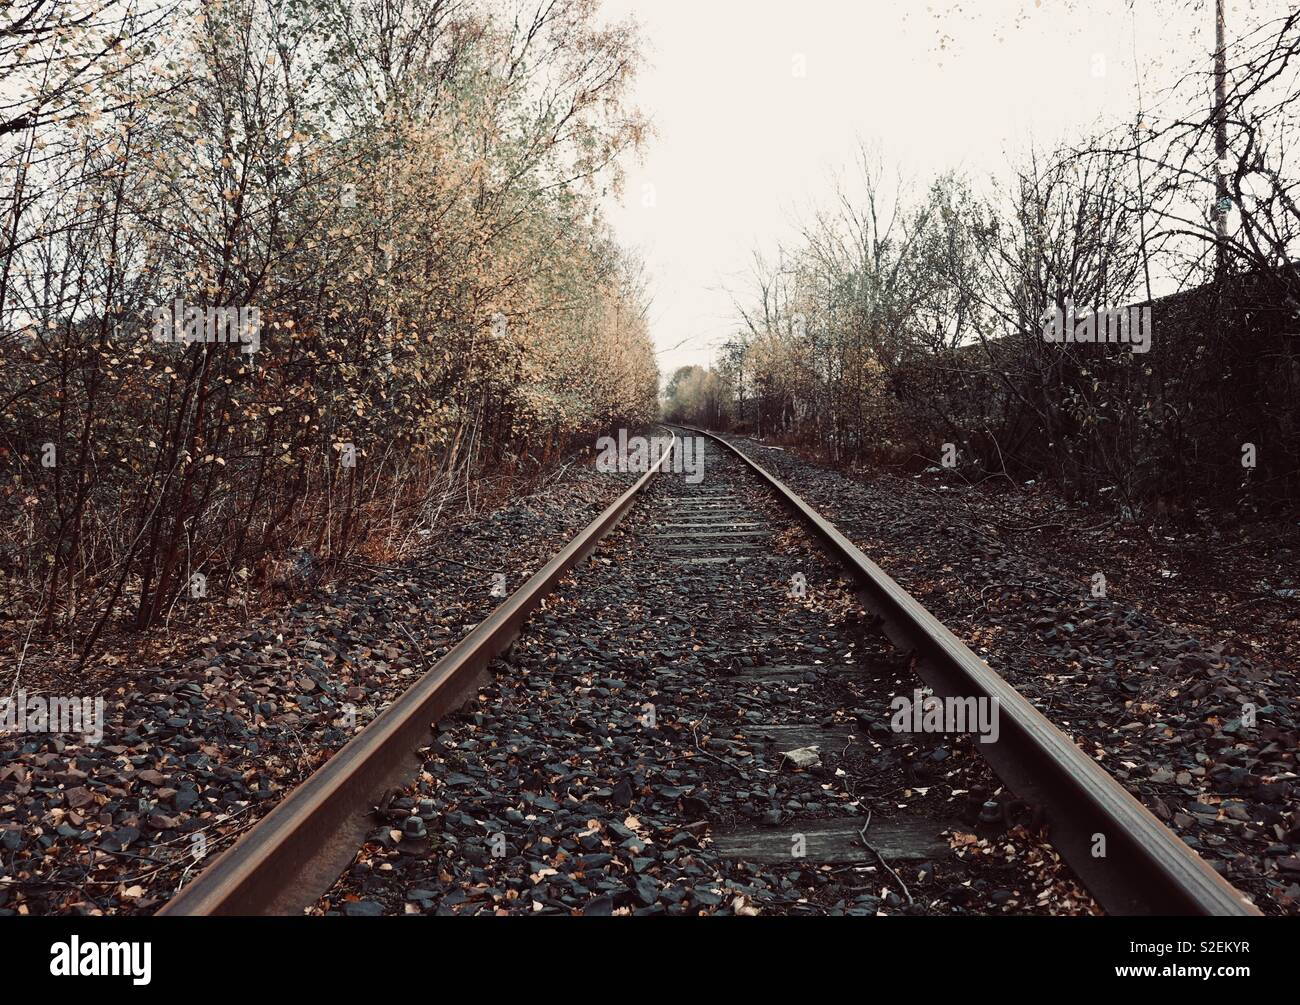 Abstract view of railway tracks with winter trees shedding leaves - Stock Image